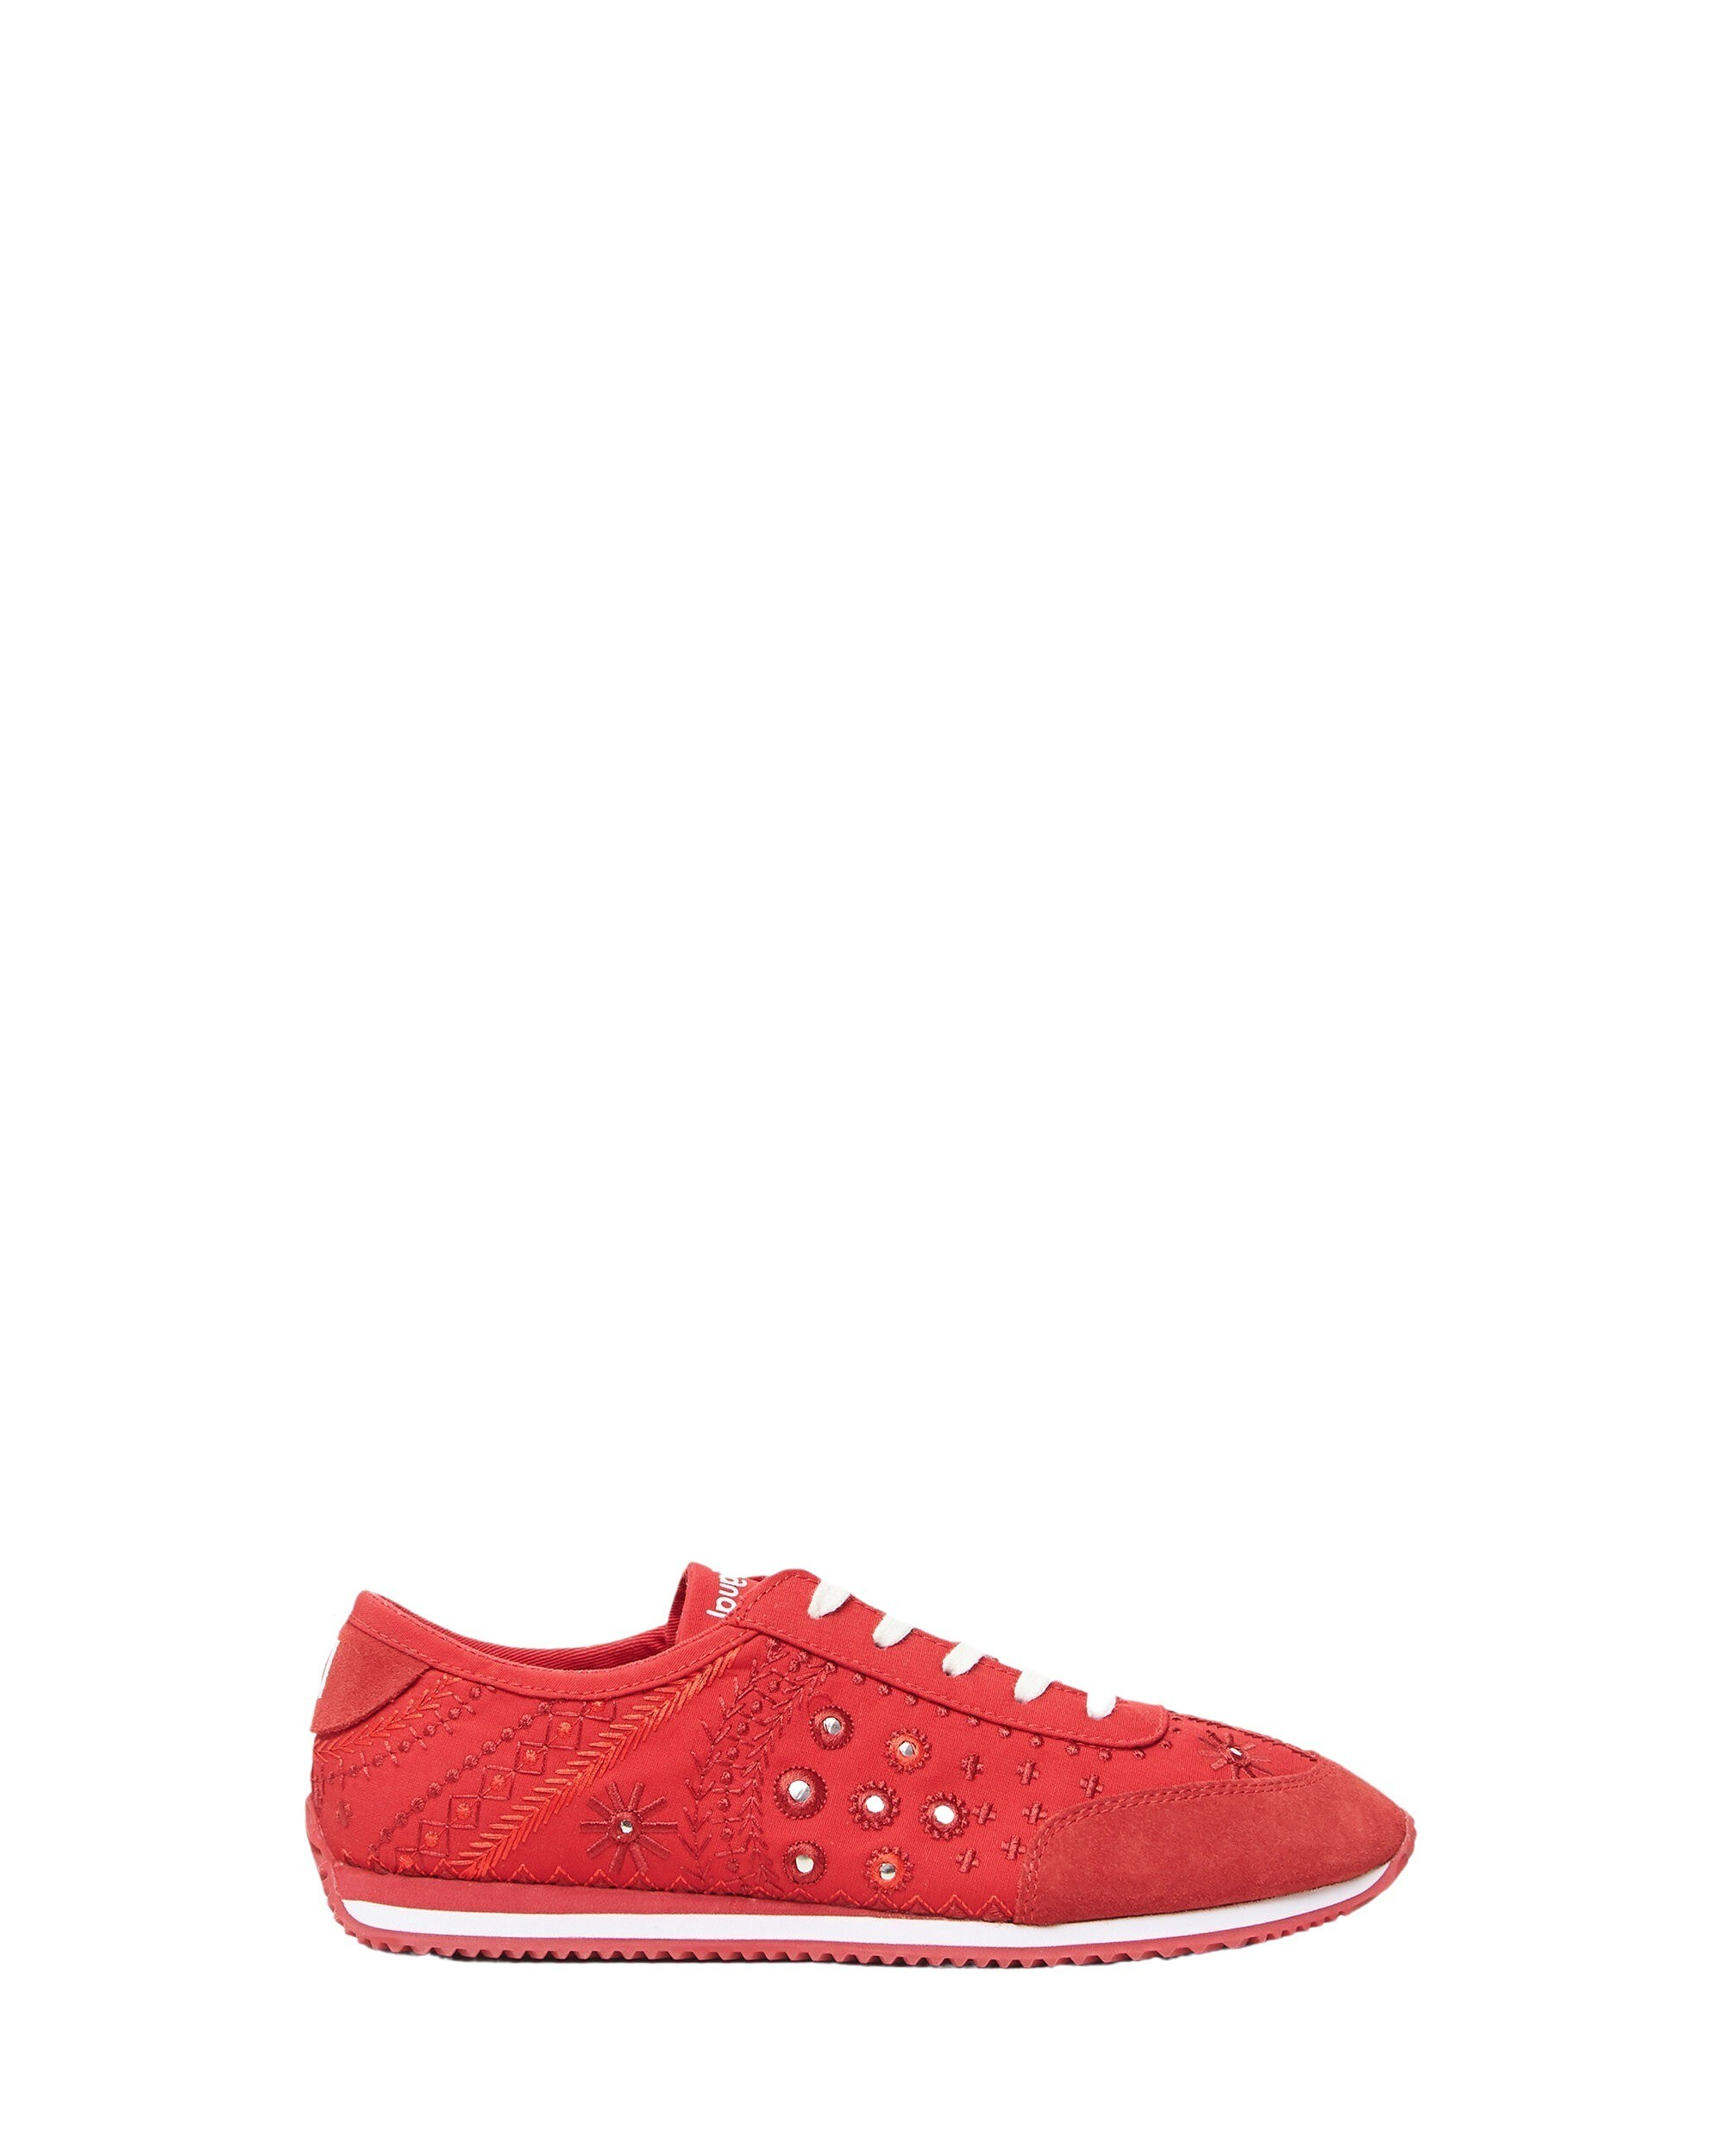 Desigual Women's Trainer Various Colours 239918 - red 39